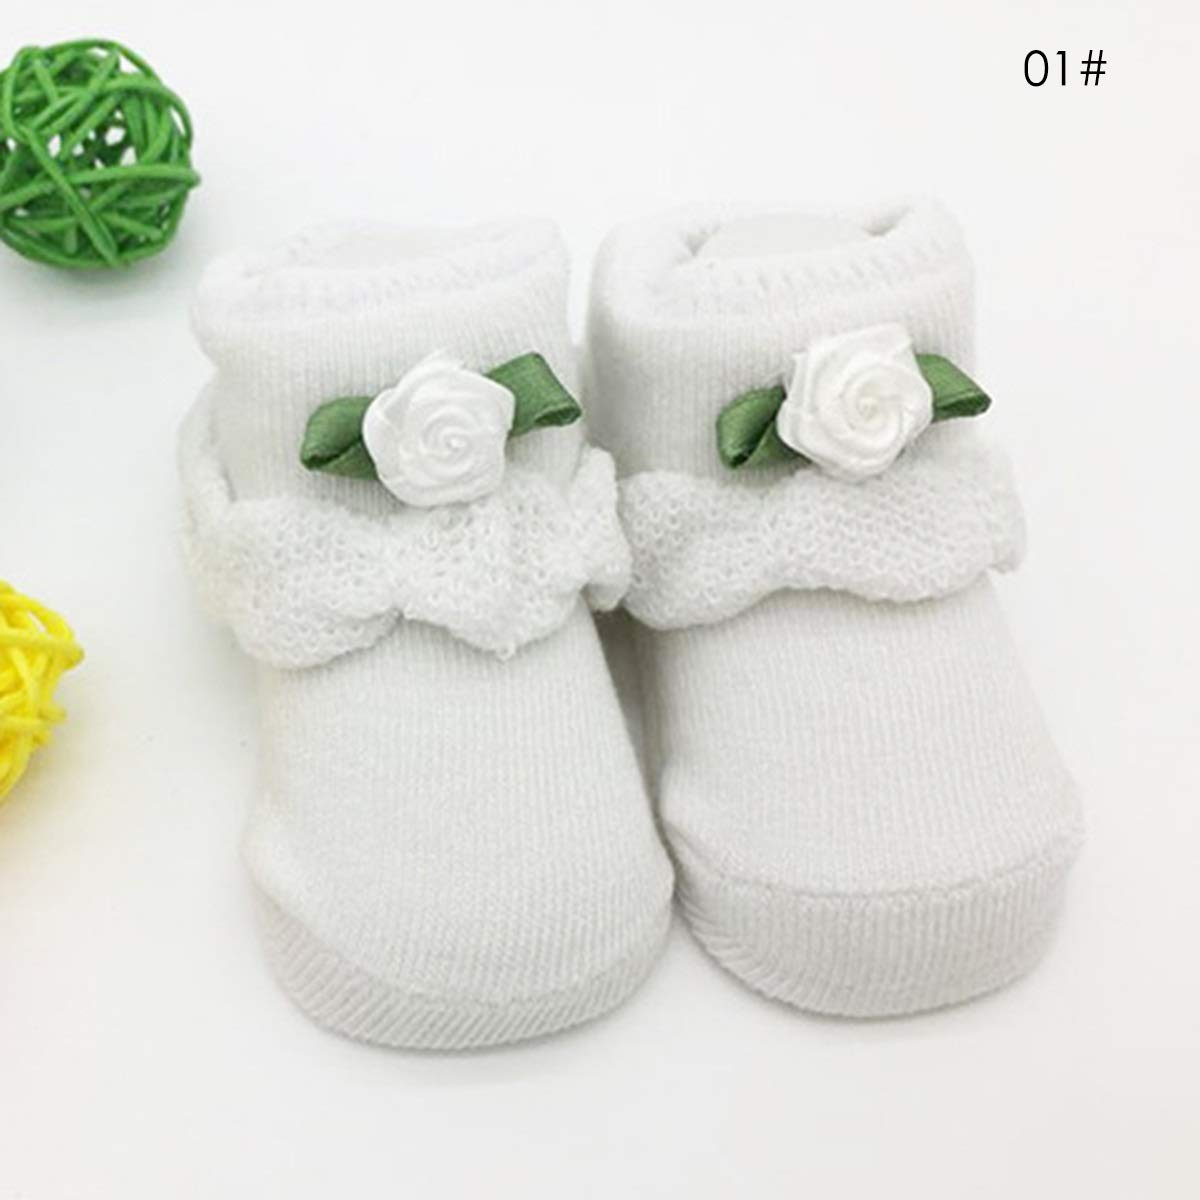 Jinxuny 0-6Months Baby Socks Newborn Infant Kid Comfy Cotton Non-Slip Booties Warm Ankle Booties Soft Sole Unisex (Color : 4)